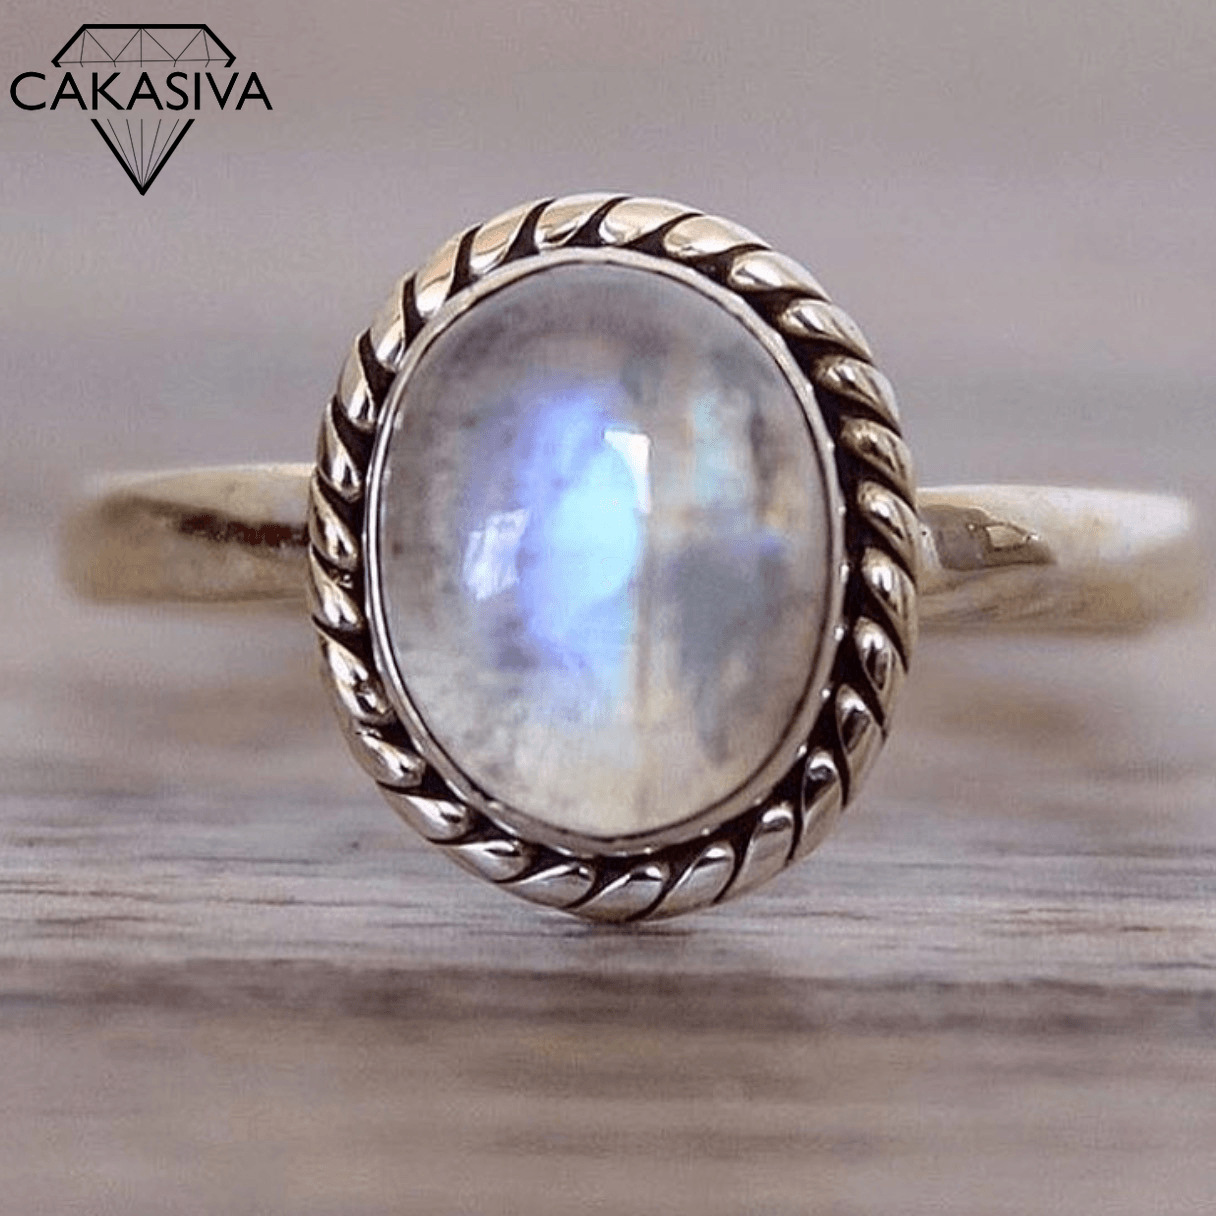 Punk Vintage Thai Silver Ring 925 Silver Ring Set with Moonstone Gemstone Rings for Women